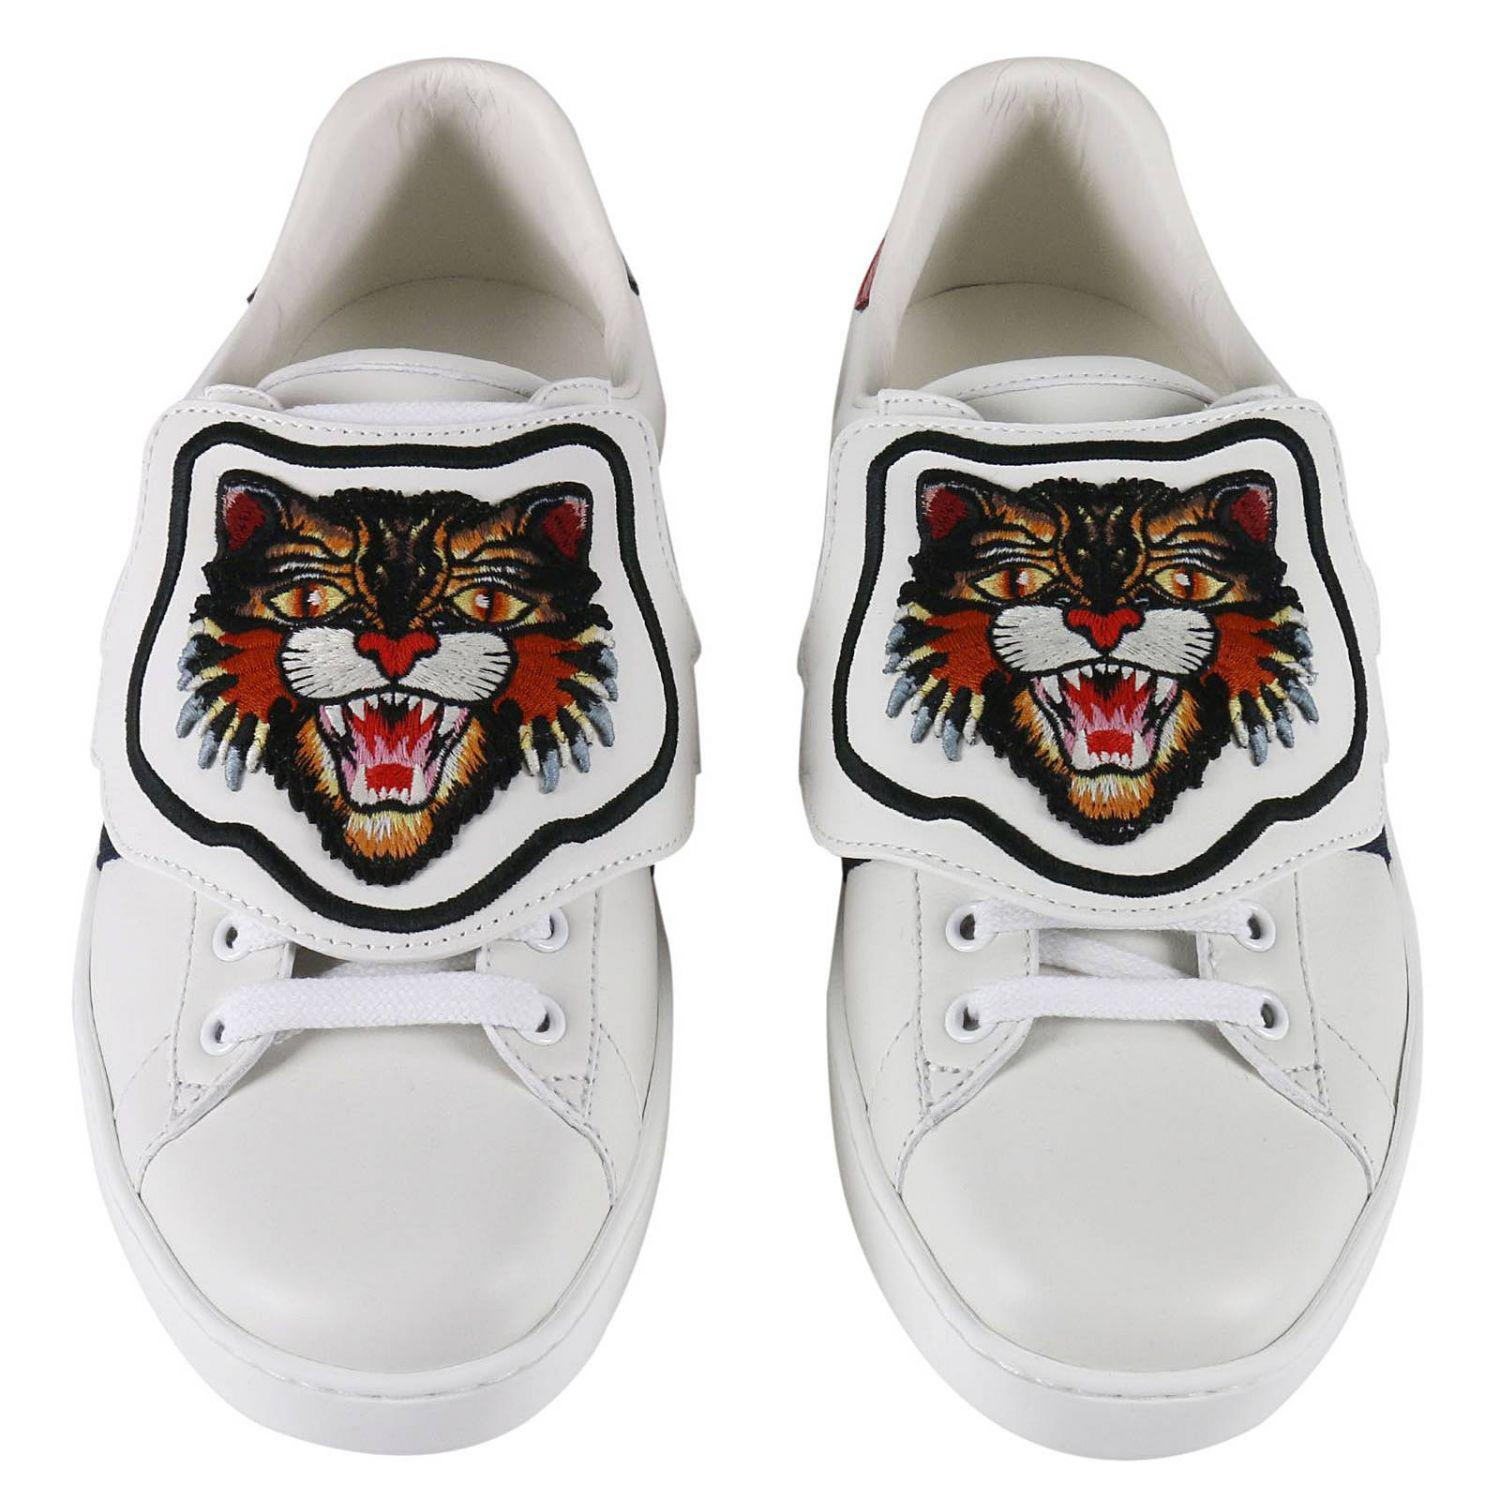 dfbfbf7ac72 Lyst - Gucci Ace Sneakers With Embroidered Angry Cat Removable ...